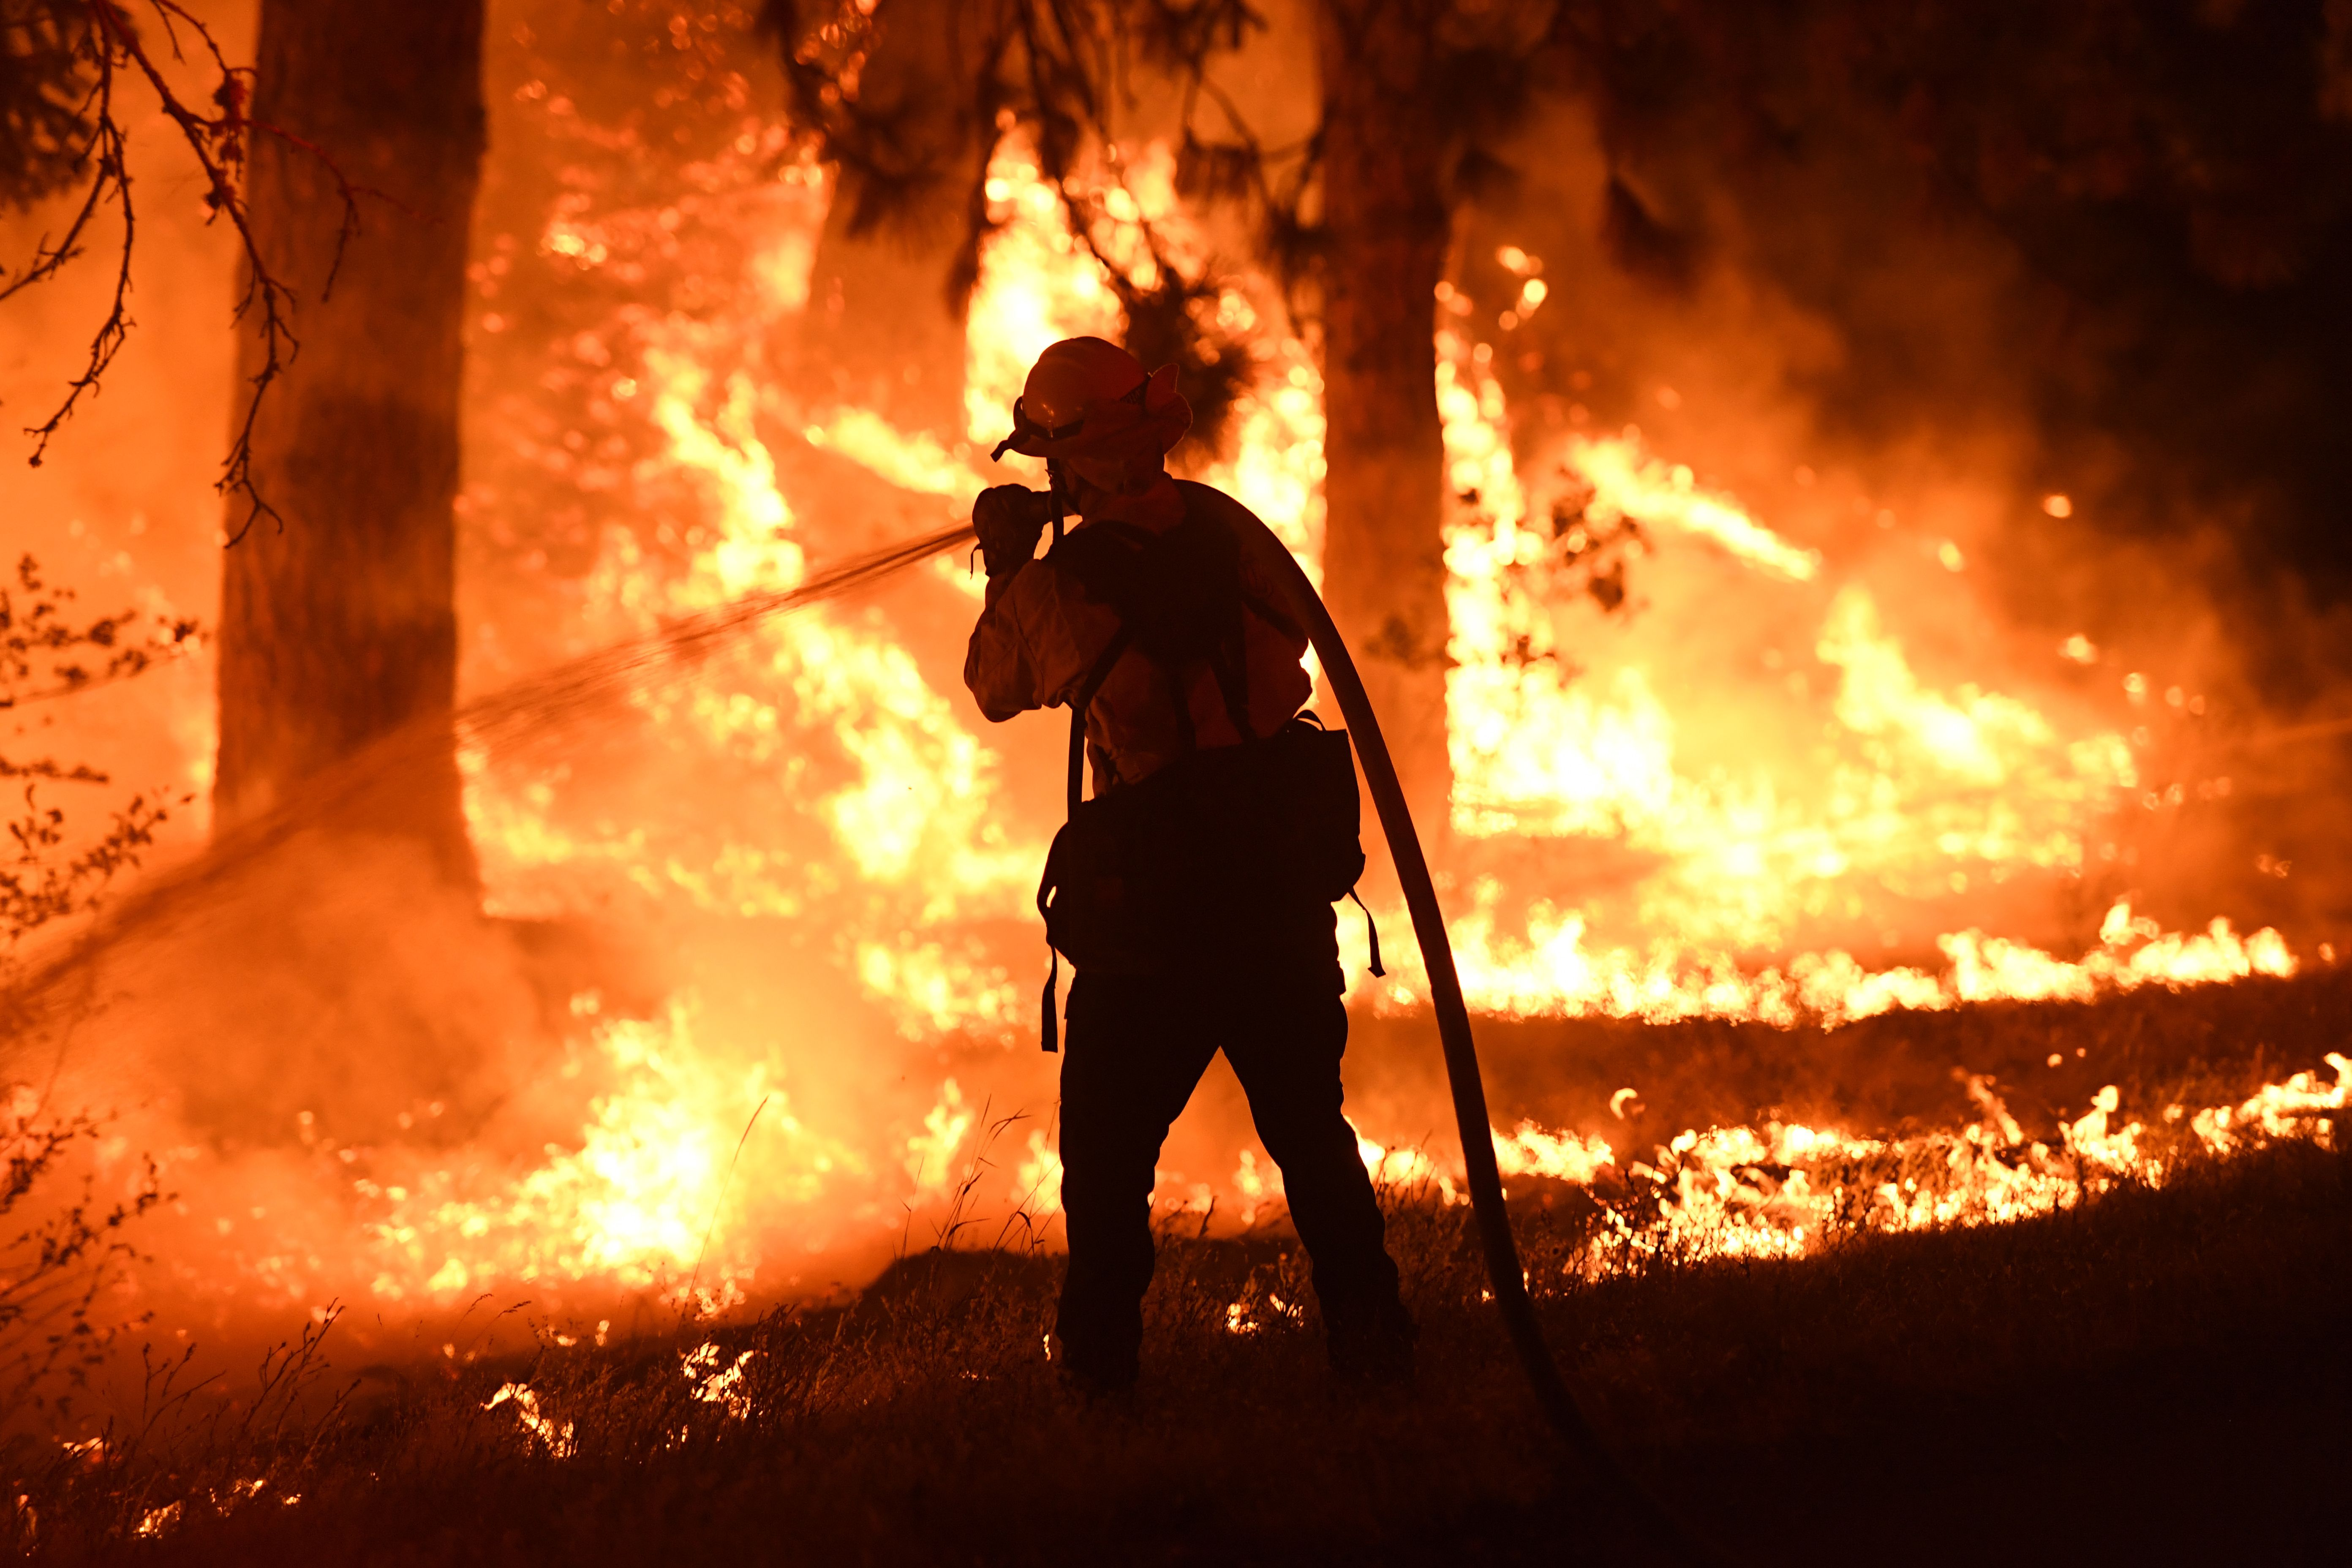 JULY 31 - A firefighter tries to control a back burn as the Carr fire continues to spread towards the towns of Douglas City and Lewiston near Redding, California